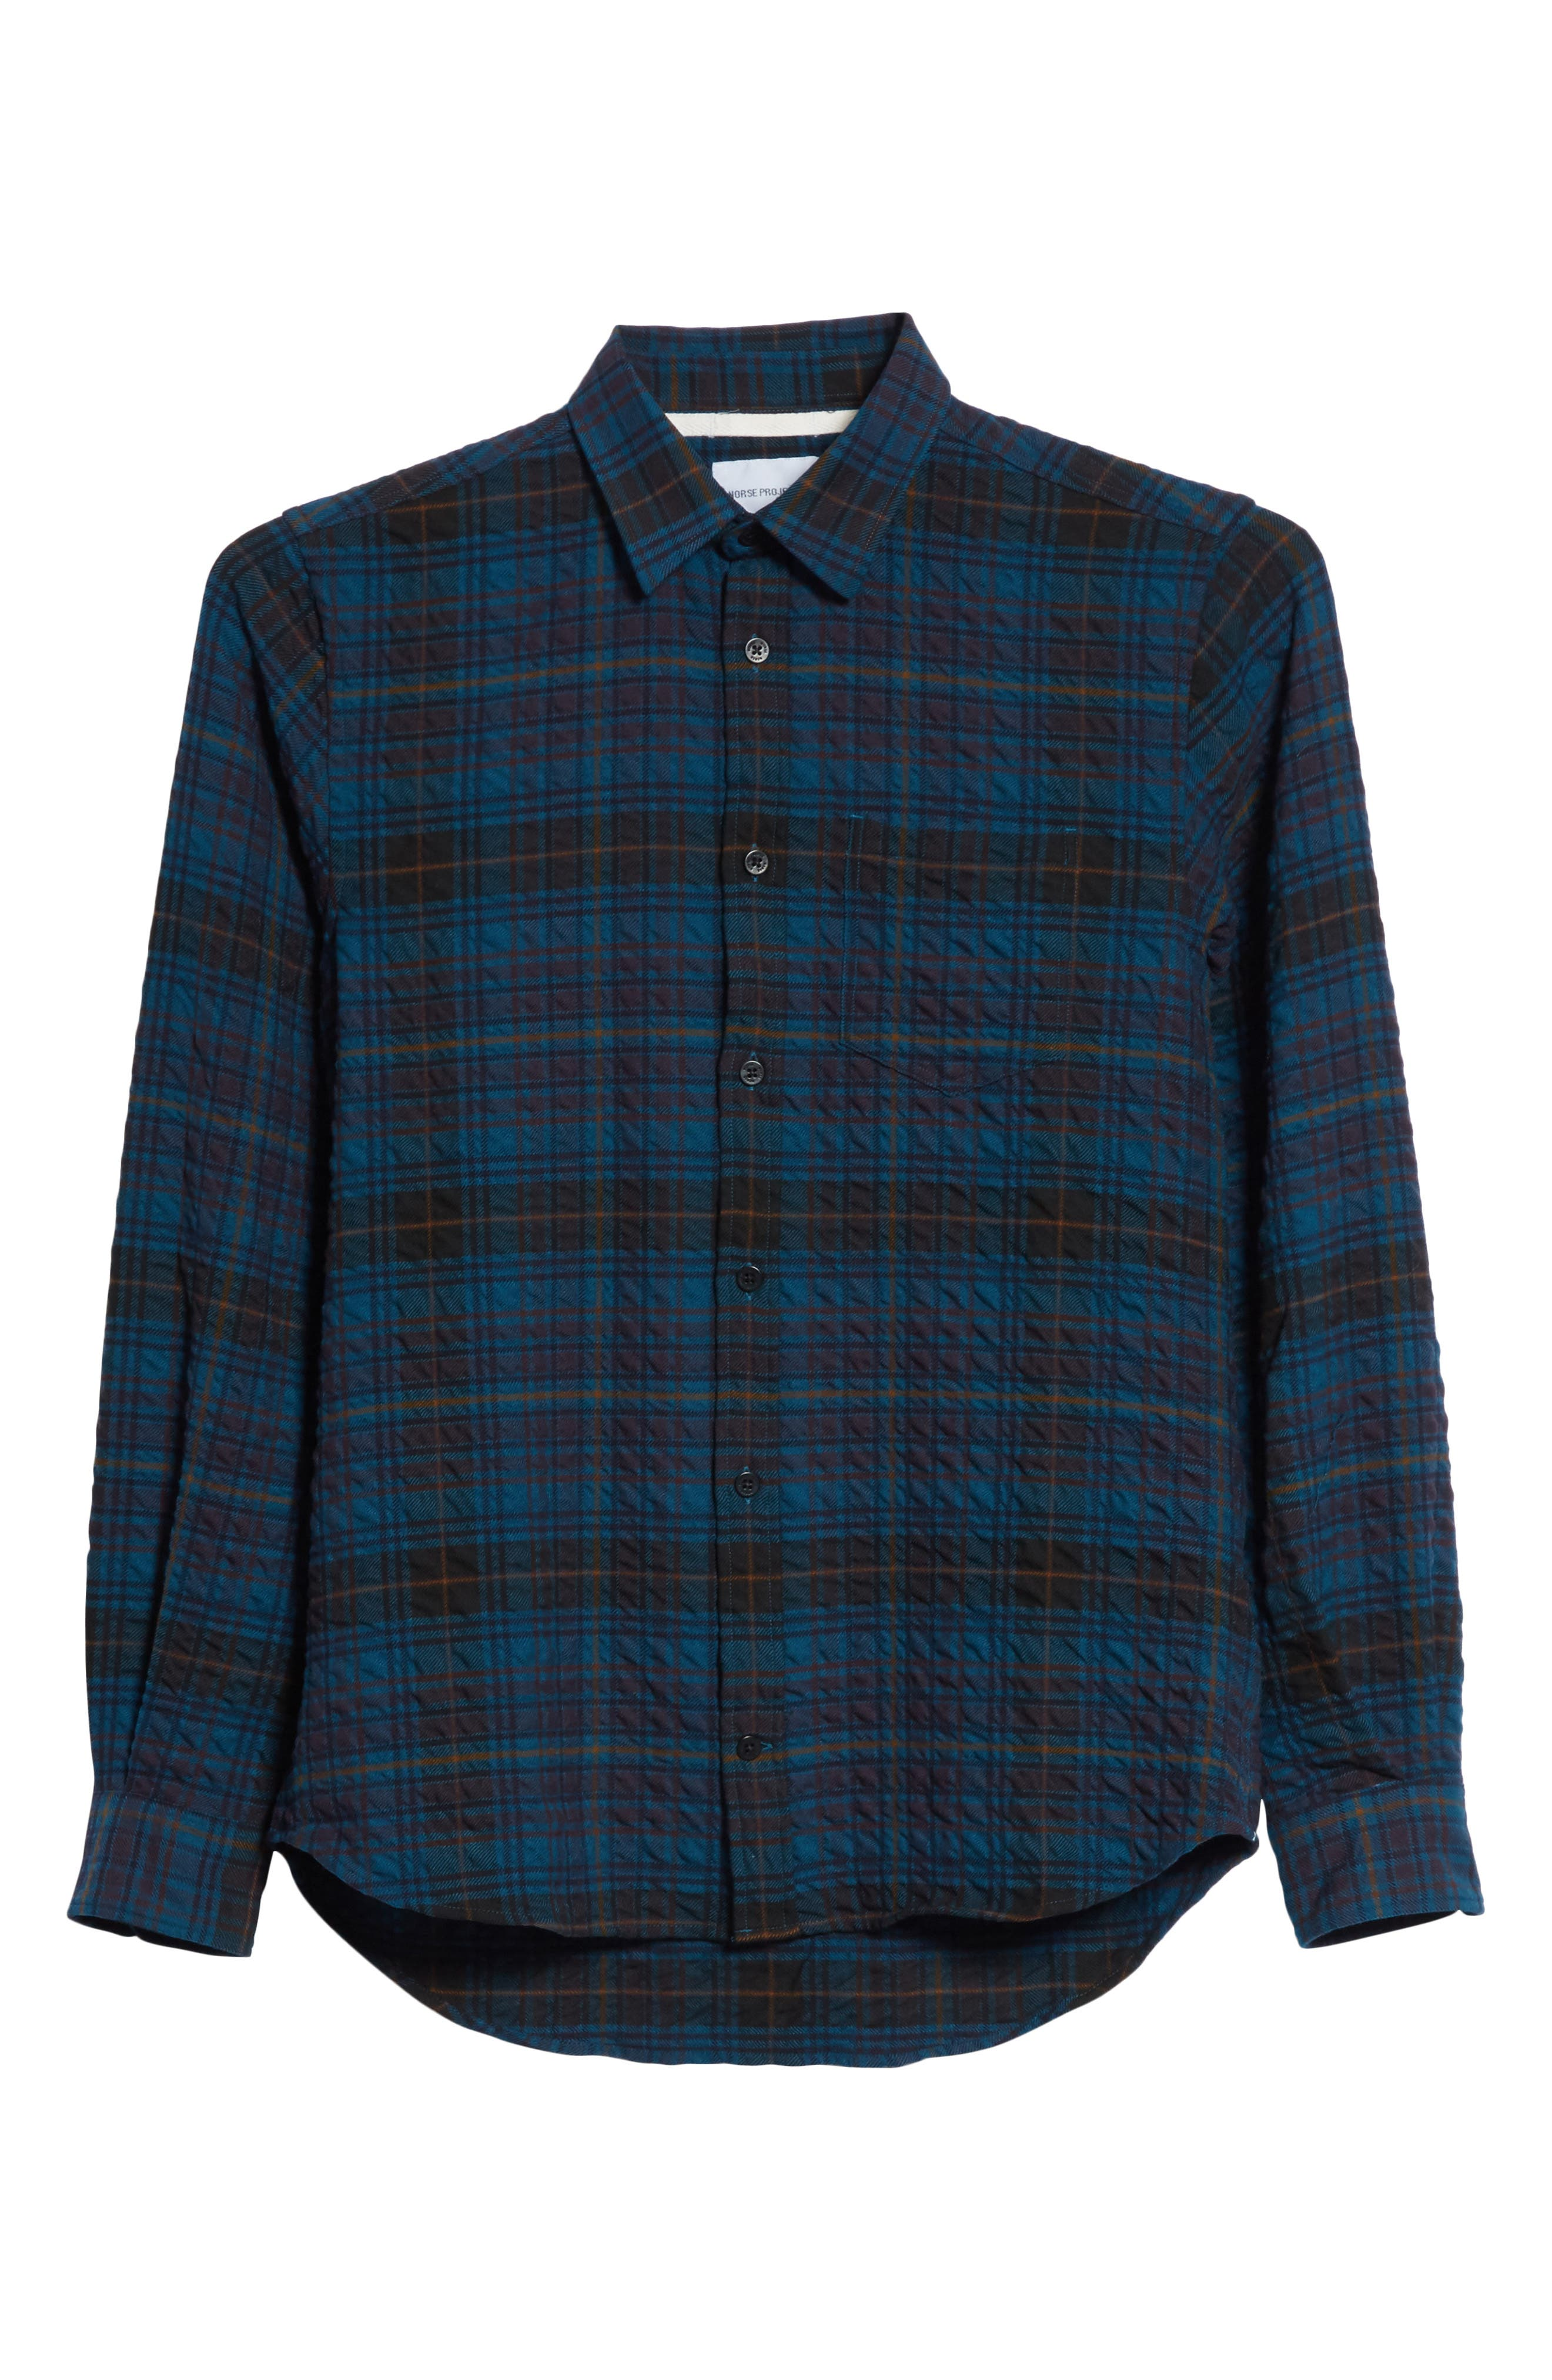 Osvald Textured Check Flannel Shirt,                             Alternate thumbnail 6, color,                             411